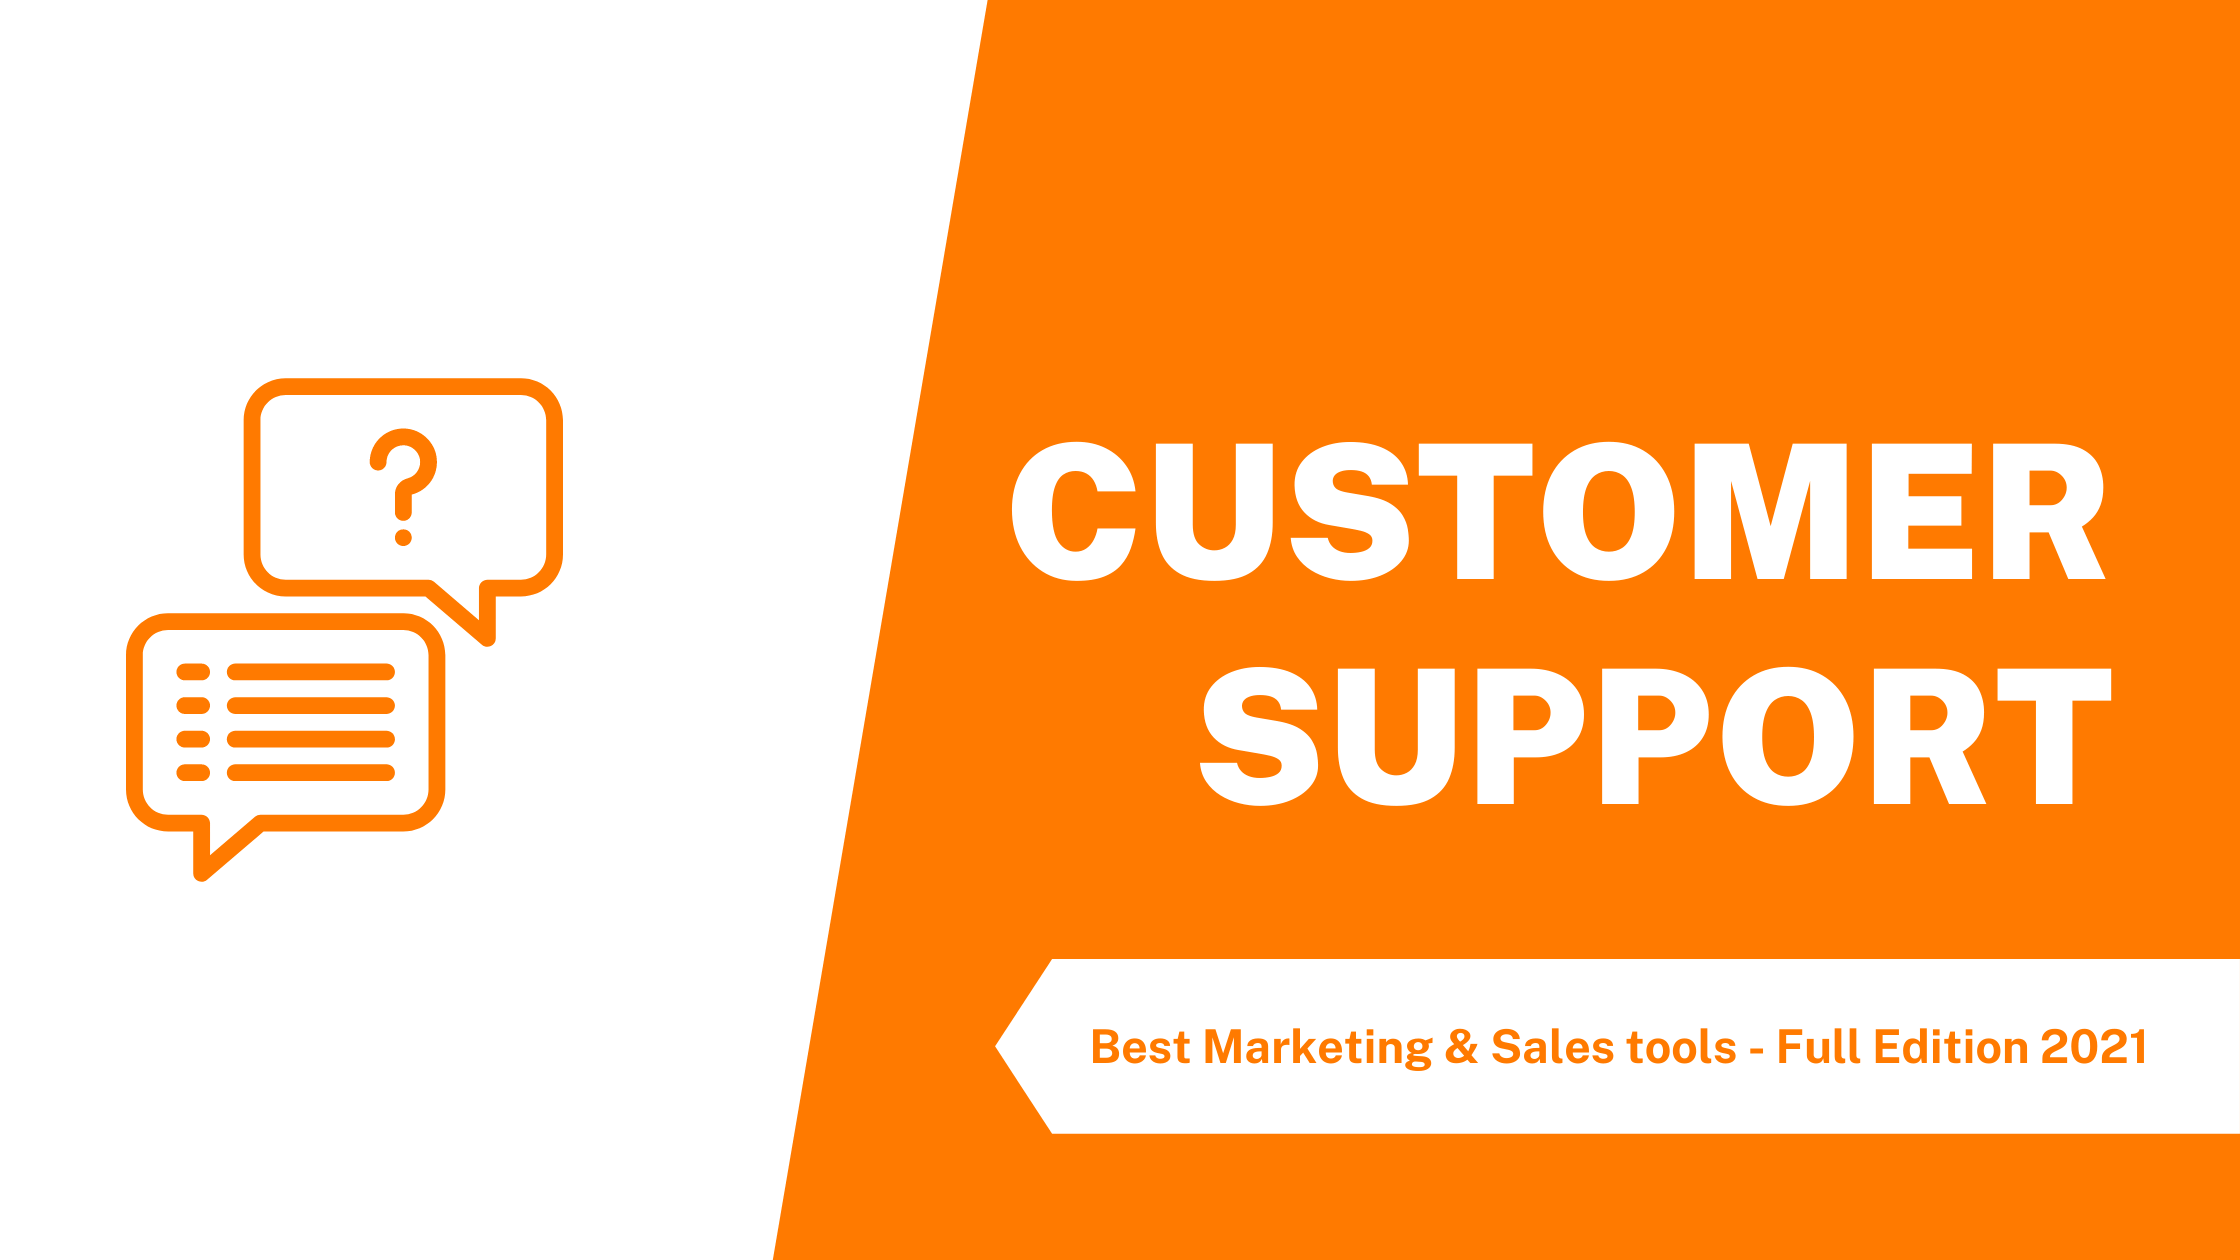 The best customer support tools for your business